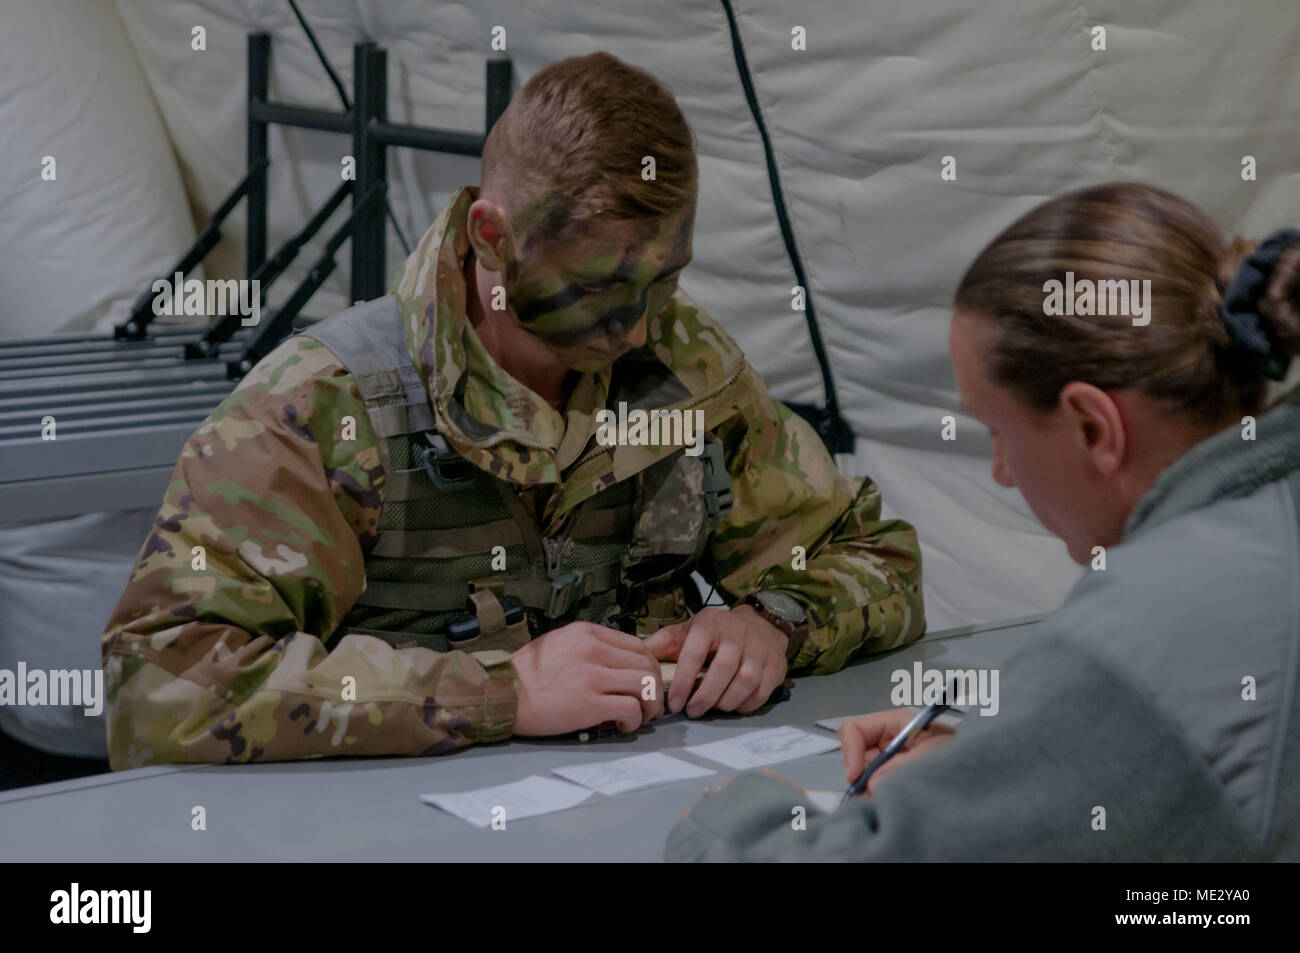 sergeant thomas crump of the 327th chemical company 76th operational response command identifies